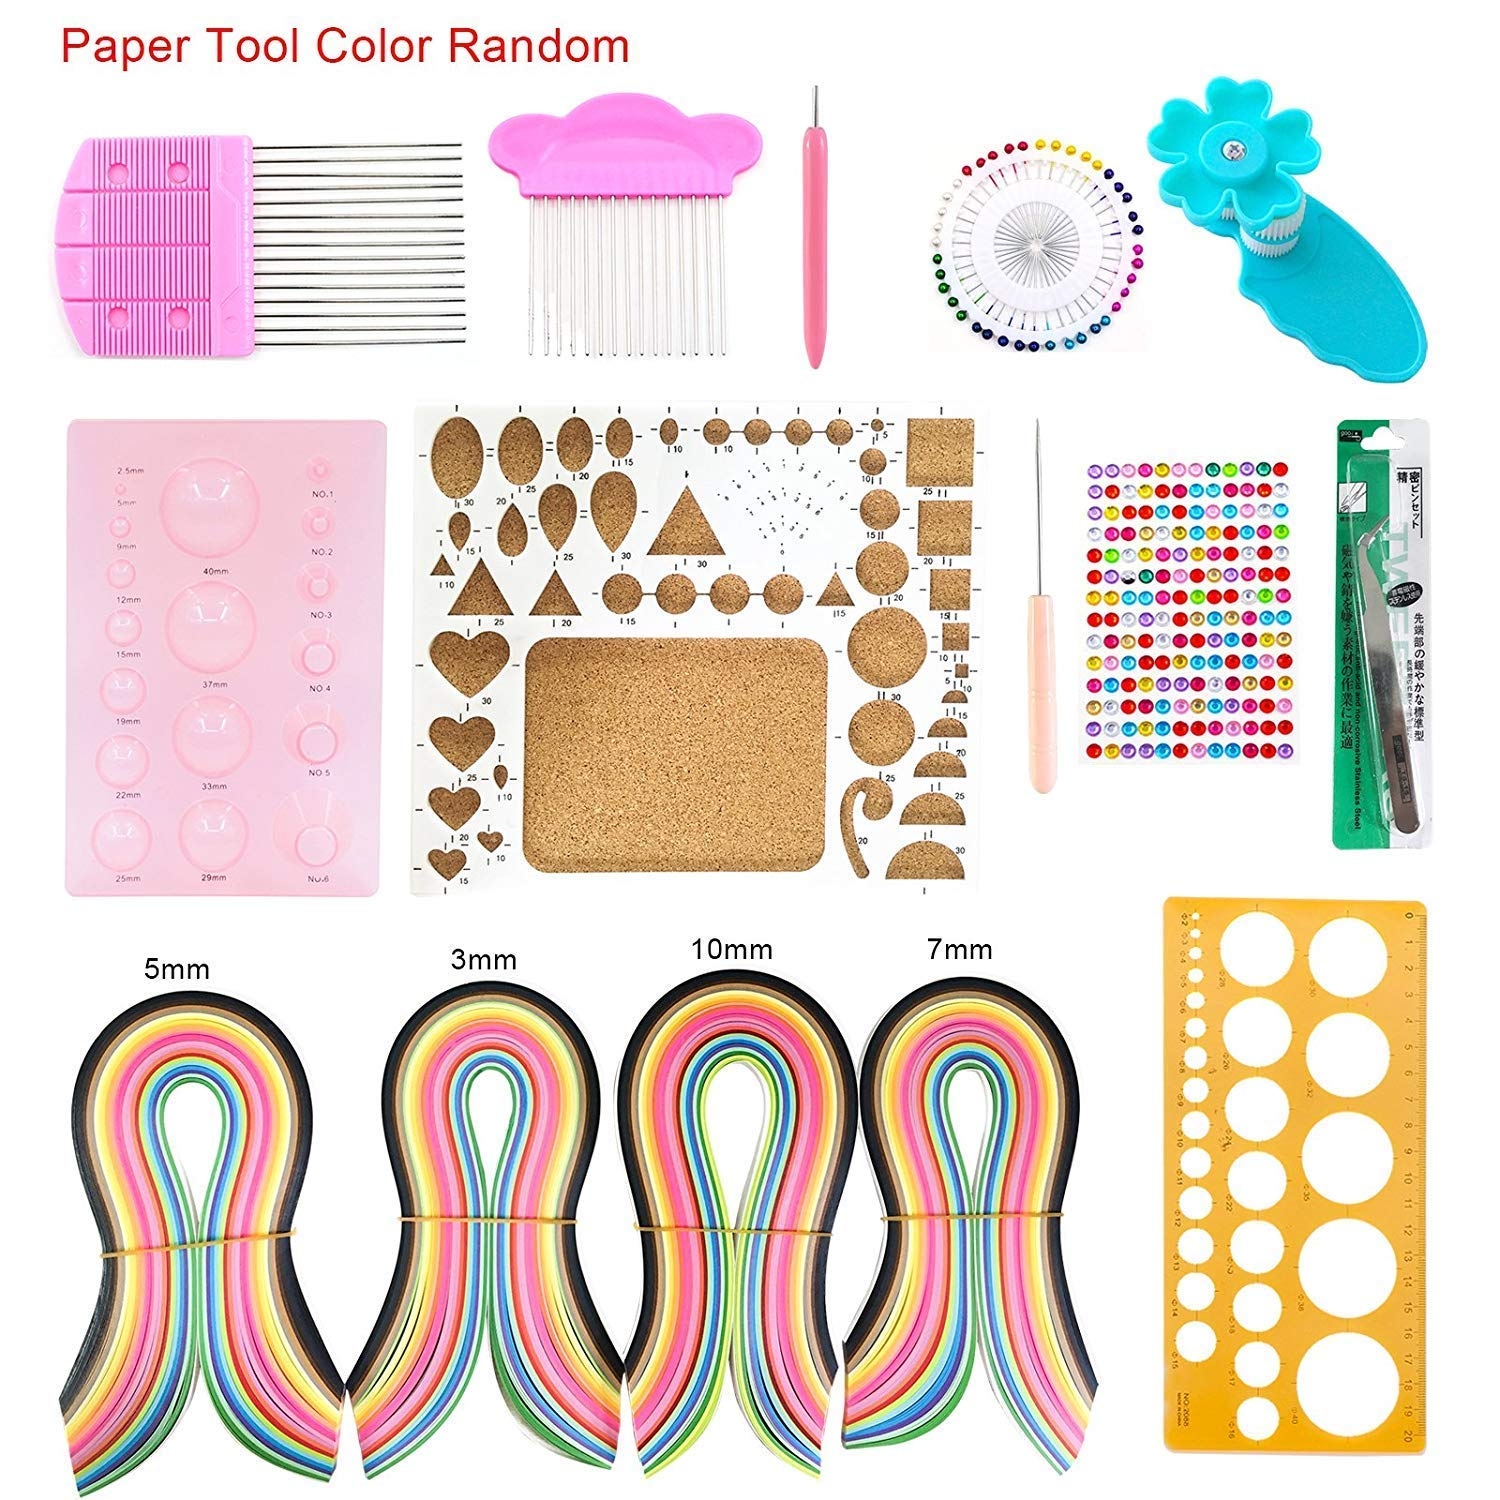 Advanced Quiller DIY Quilling Paper 9 Gradient Colors 54cm Length DIY Paper Quilling Set Craft Tool for Beginners Kids and Adults 3mm